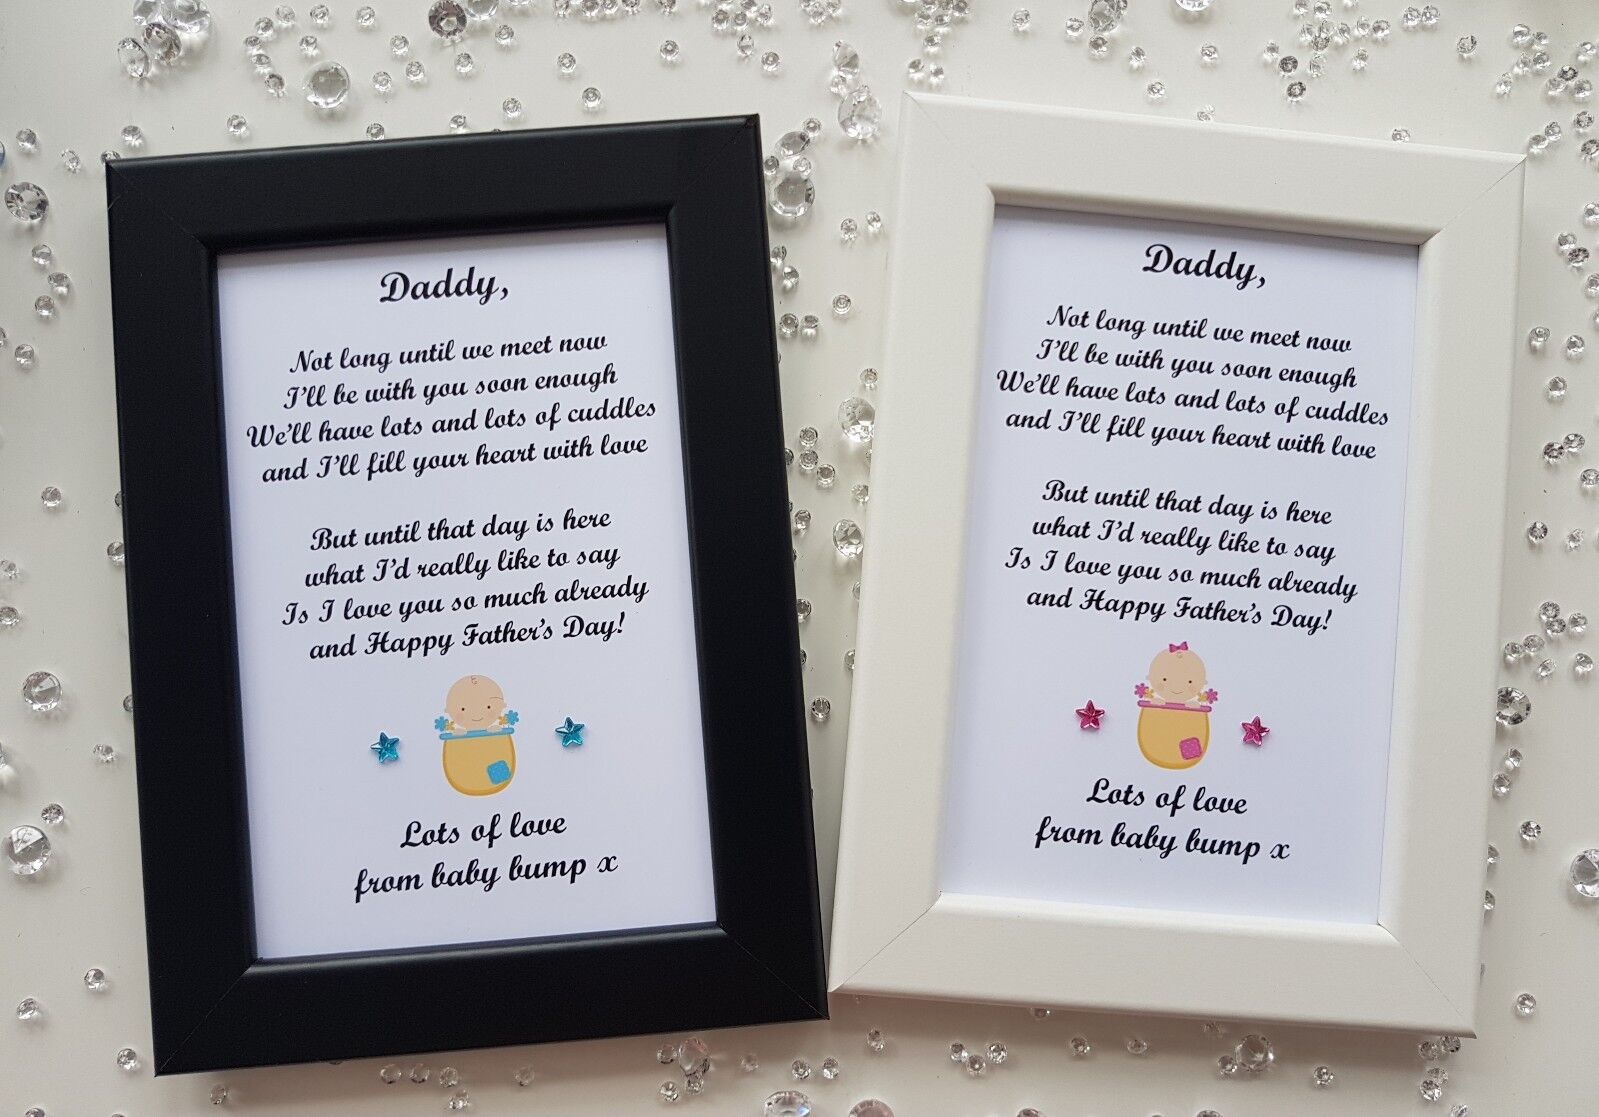 Fathers Day Photo Frame Print Gift Personalised from Baby Bump Daddy Grandad 1 of 4 See More